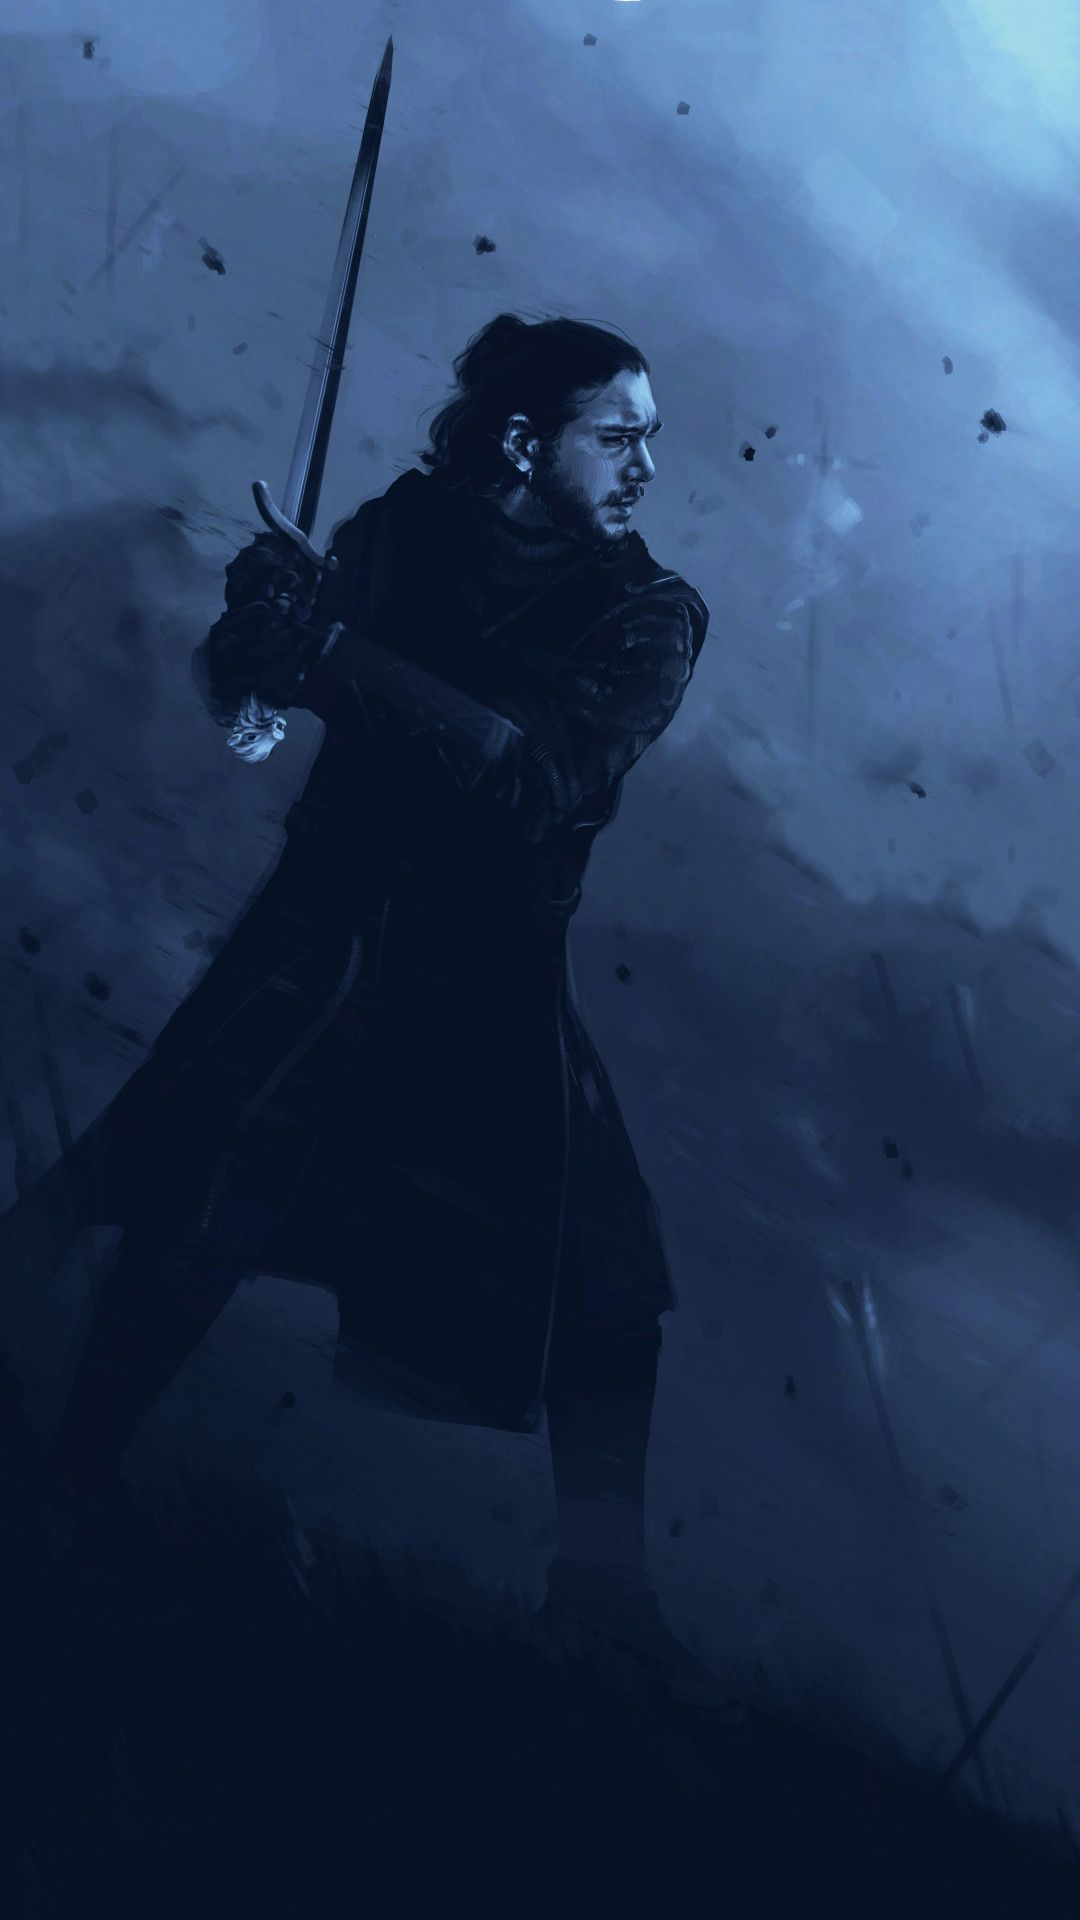 Jon Snow Game Of Thrones Hd Wallpaper Android Hd Wallpaper Android Game Of Thrones Art Amazing Hd Wallpapers Jon snow game of thrones wallpaper